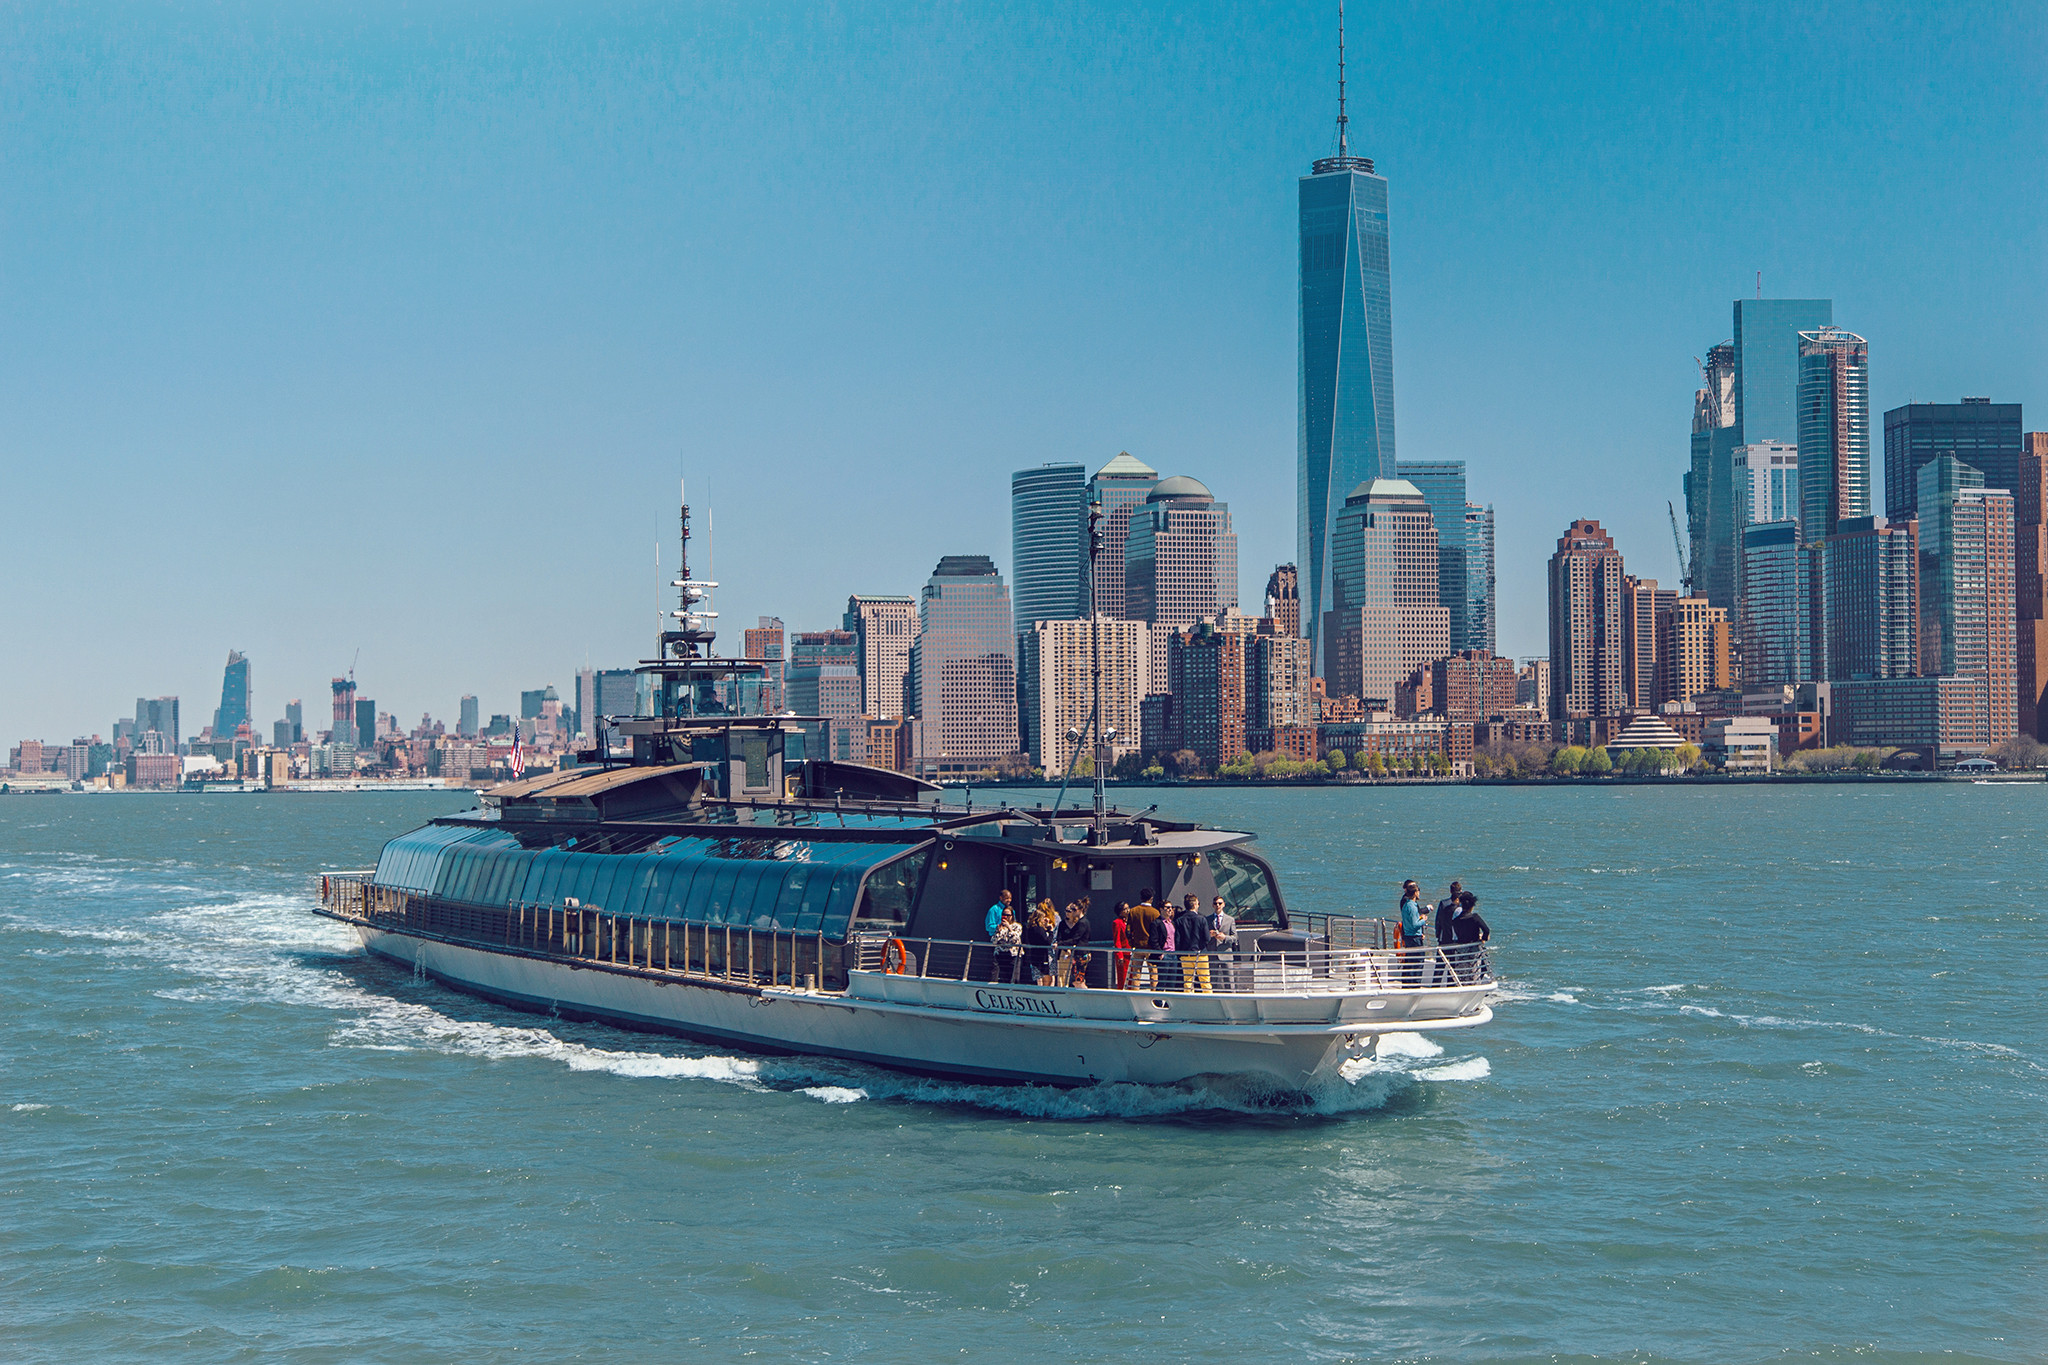 Cruise Dinner Nyc  7 Best Dinner Cruises in NYC for an Elegant Evening